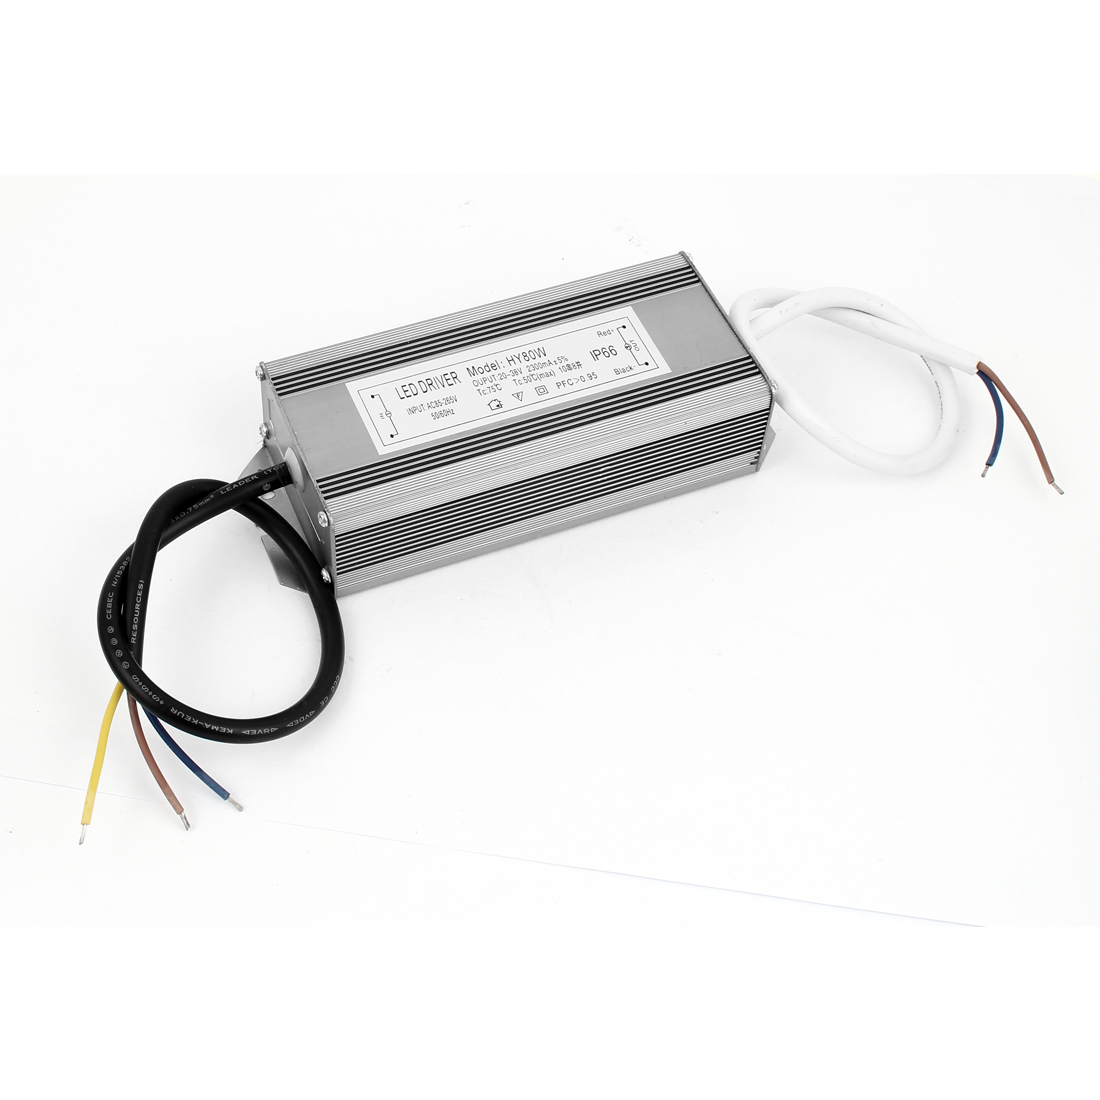 AC85-265V to DC20-38V 80W Transformer IP66 Waterproof LED Driver Power Supply